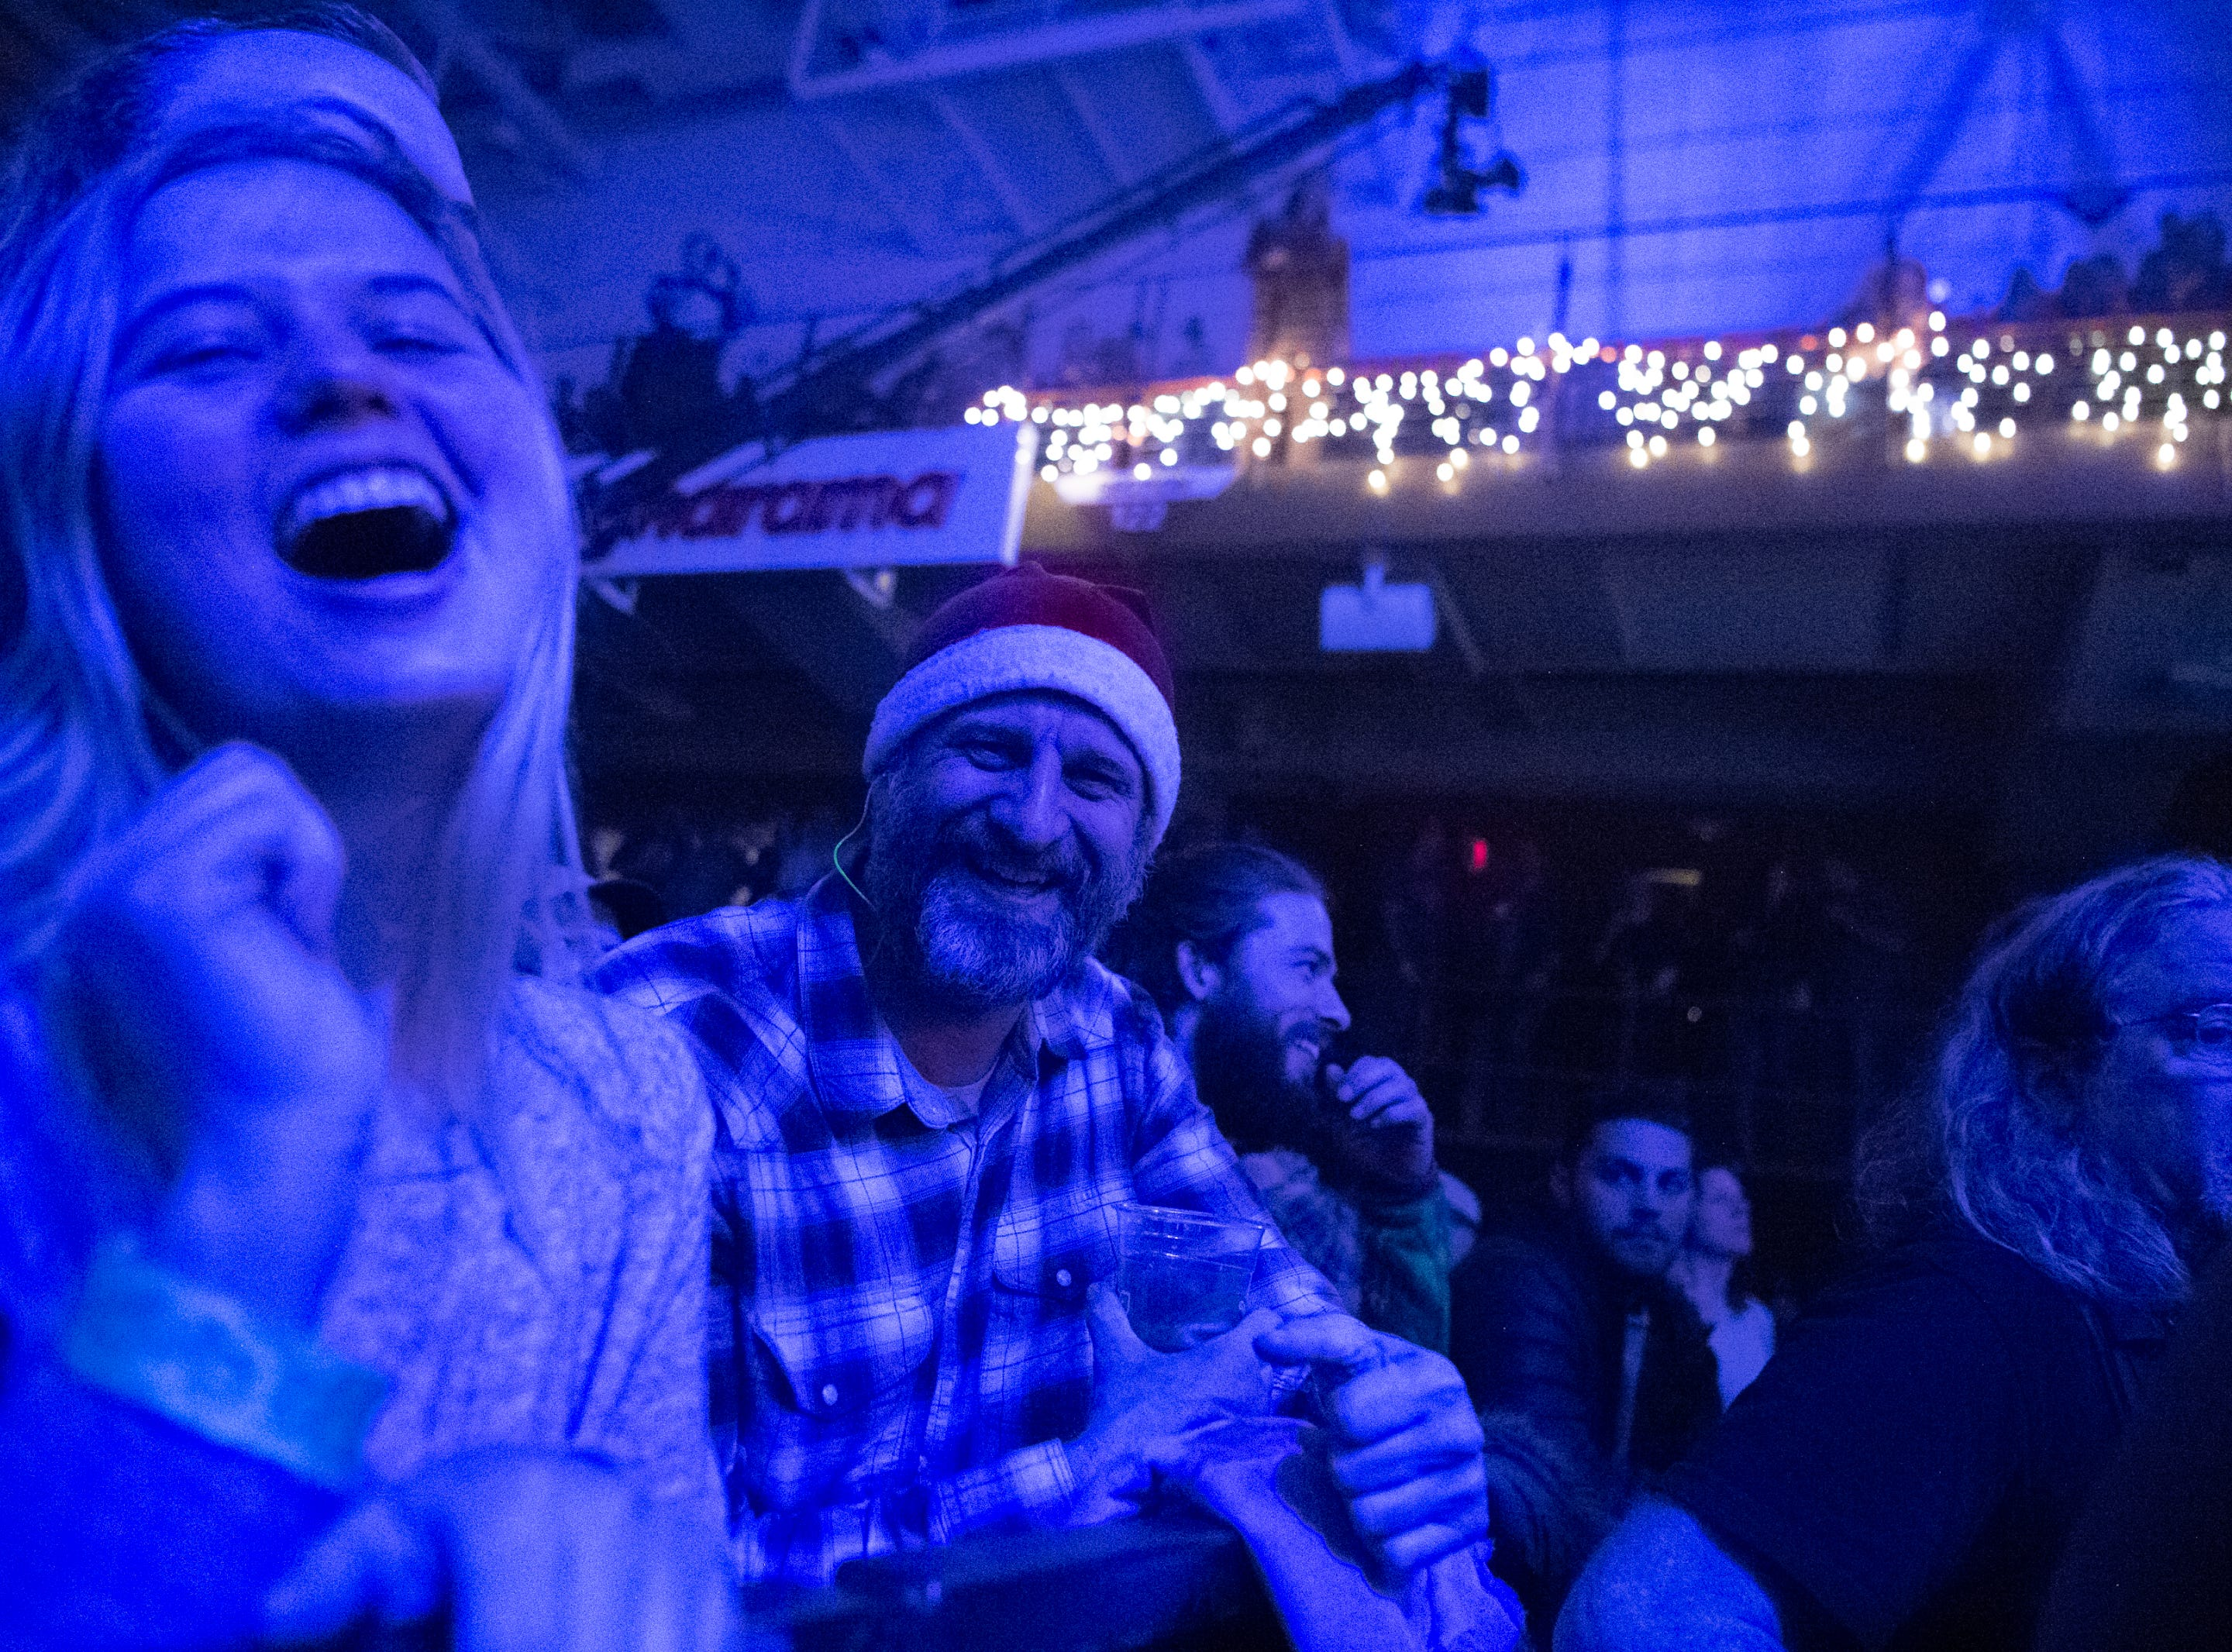 Night one of the 30th annual Christmas Jam took place at the U.S Cellular Center in Asheville, Dec. 7, 2018, and included Dark Side of the Mule, Jamey Johnson, Grace Potter, Mike Gordon, Marco Benevento as well as other special guests.